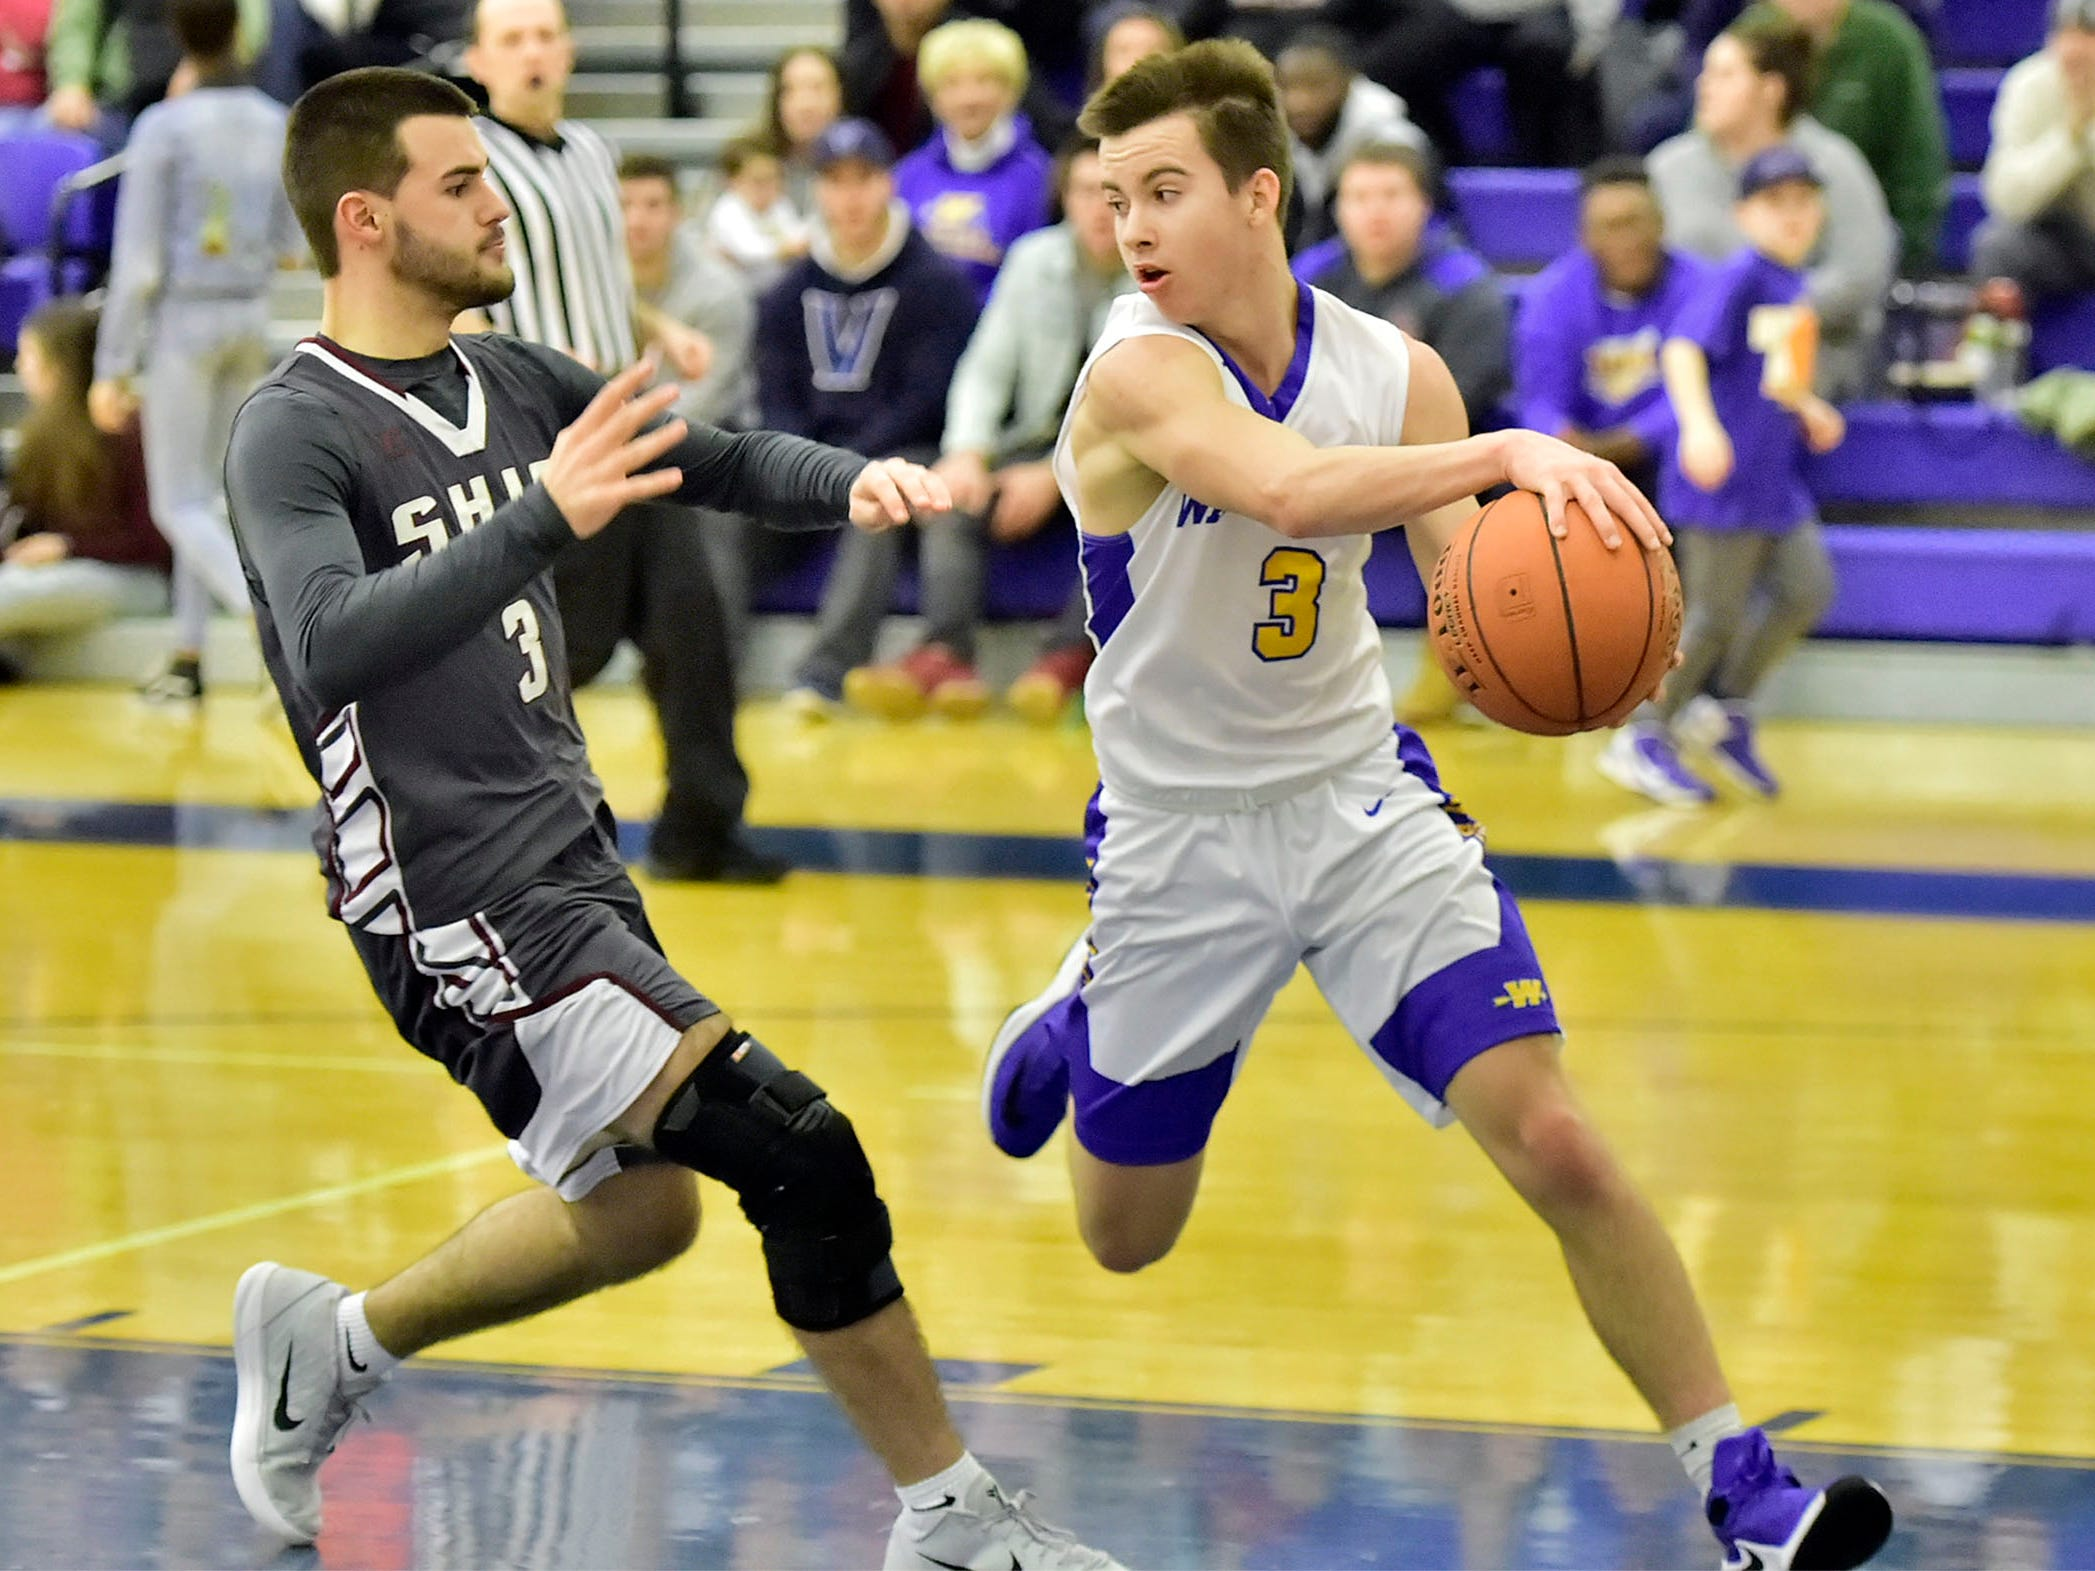 Cole Rhyne of Waynesboro (3) passes the ball around Carson Helflrick Shippensburg's (3) on Tuesday, December 18, 2018. Waynesboro defeated Shippensburg 72-59 during a home game.